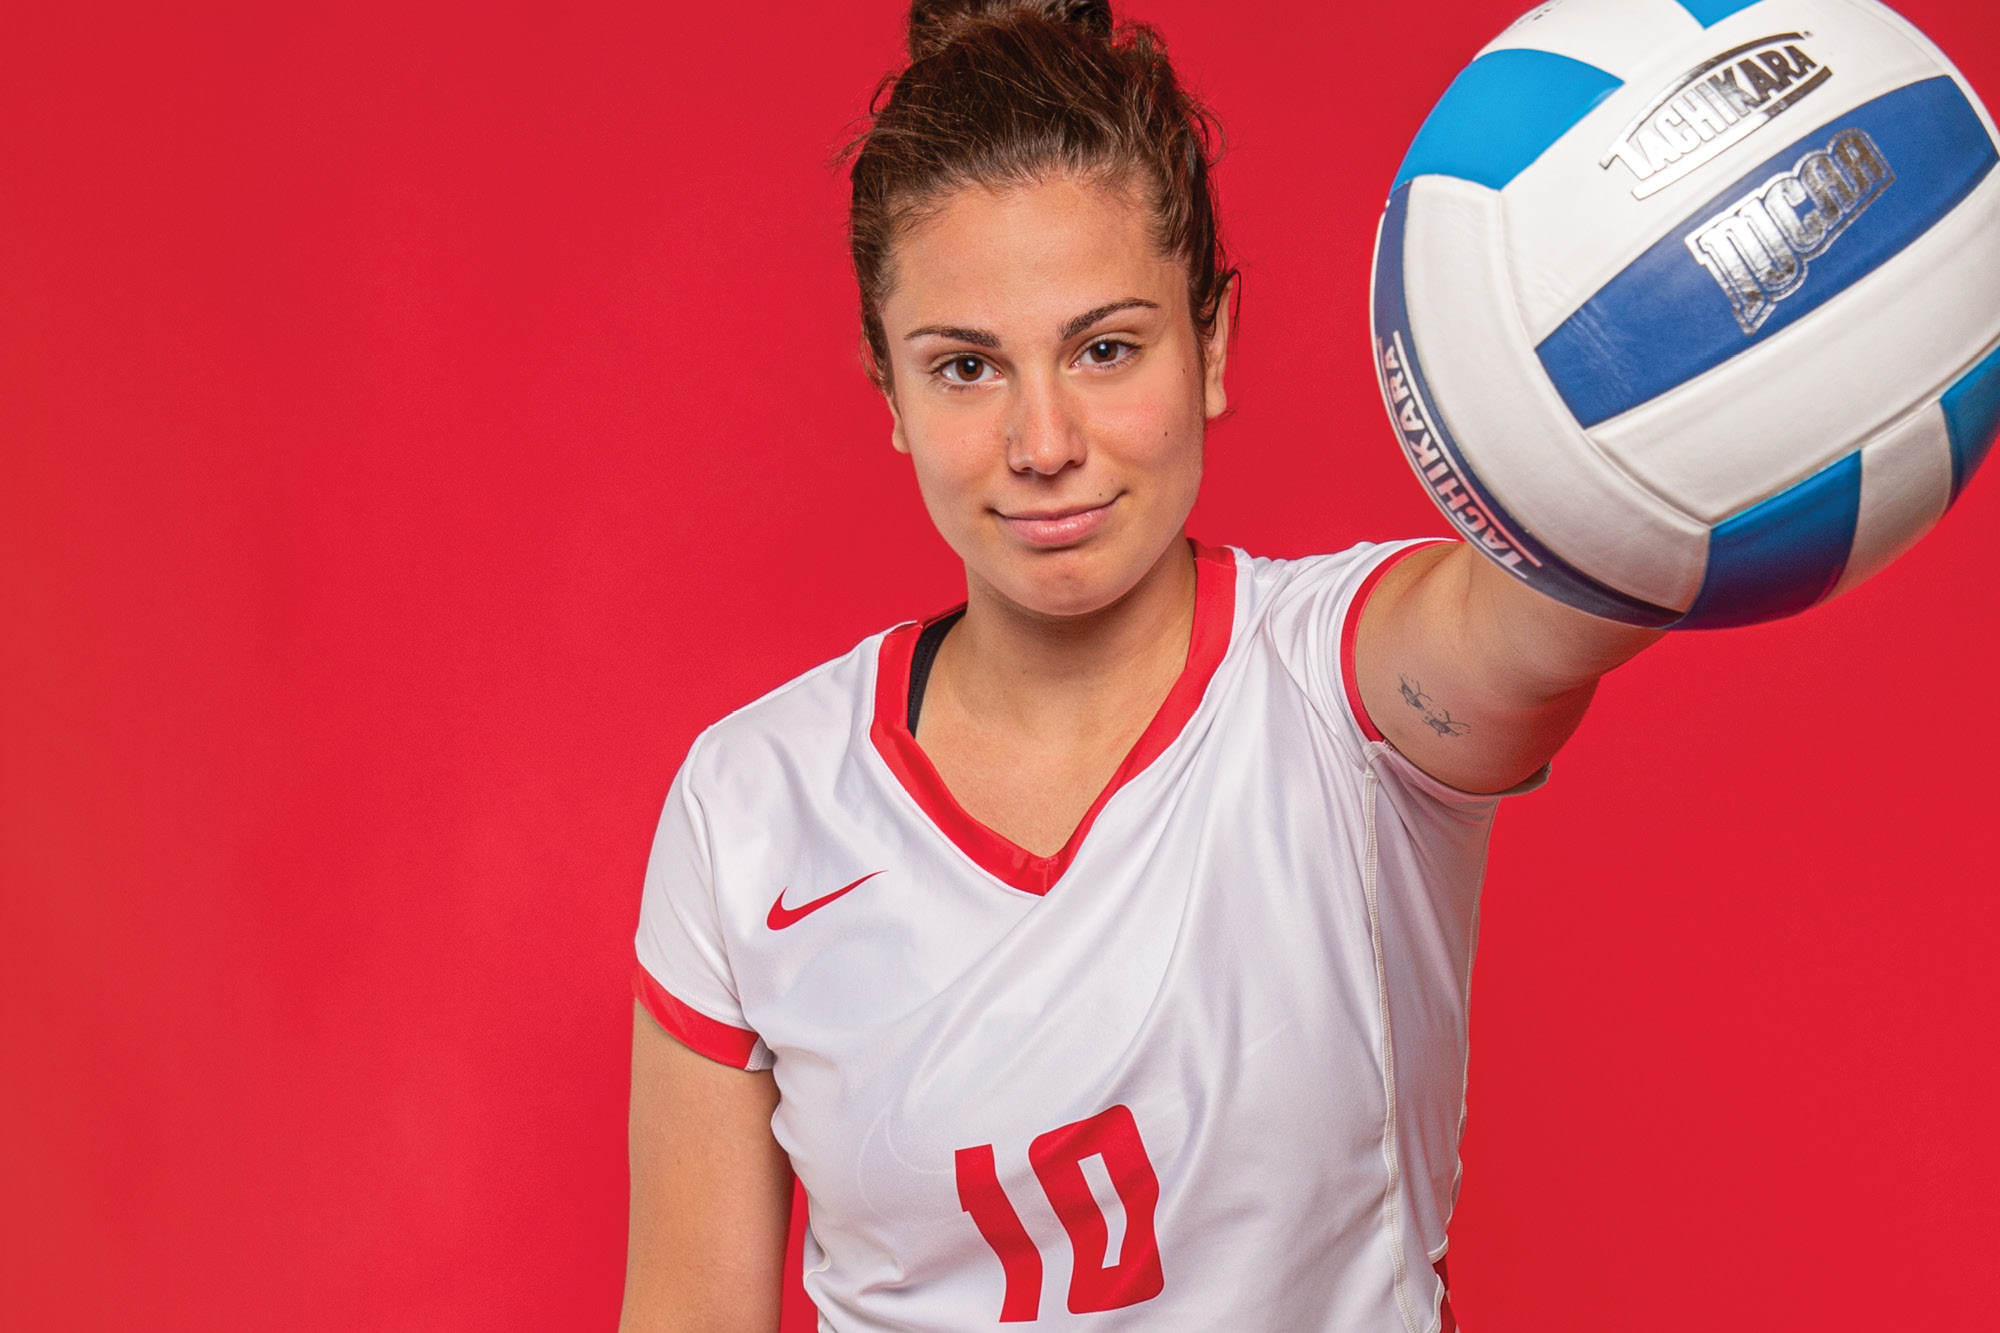 Photo of Casper College volleyball player Jovana Jeremic holding a volleyball